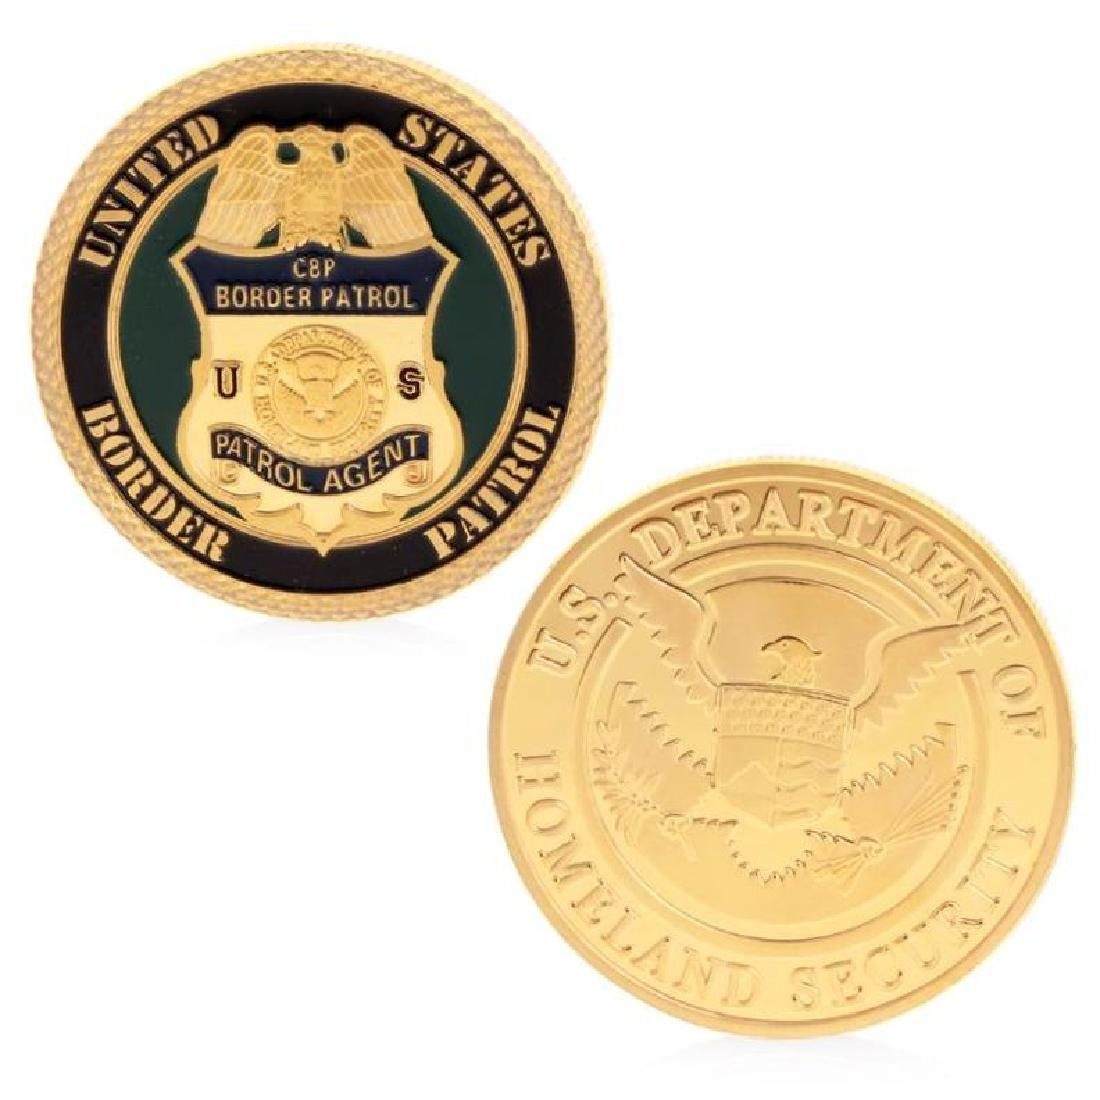 USA Homeland Security Gold Clad Coin